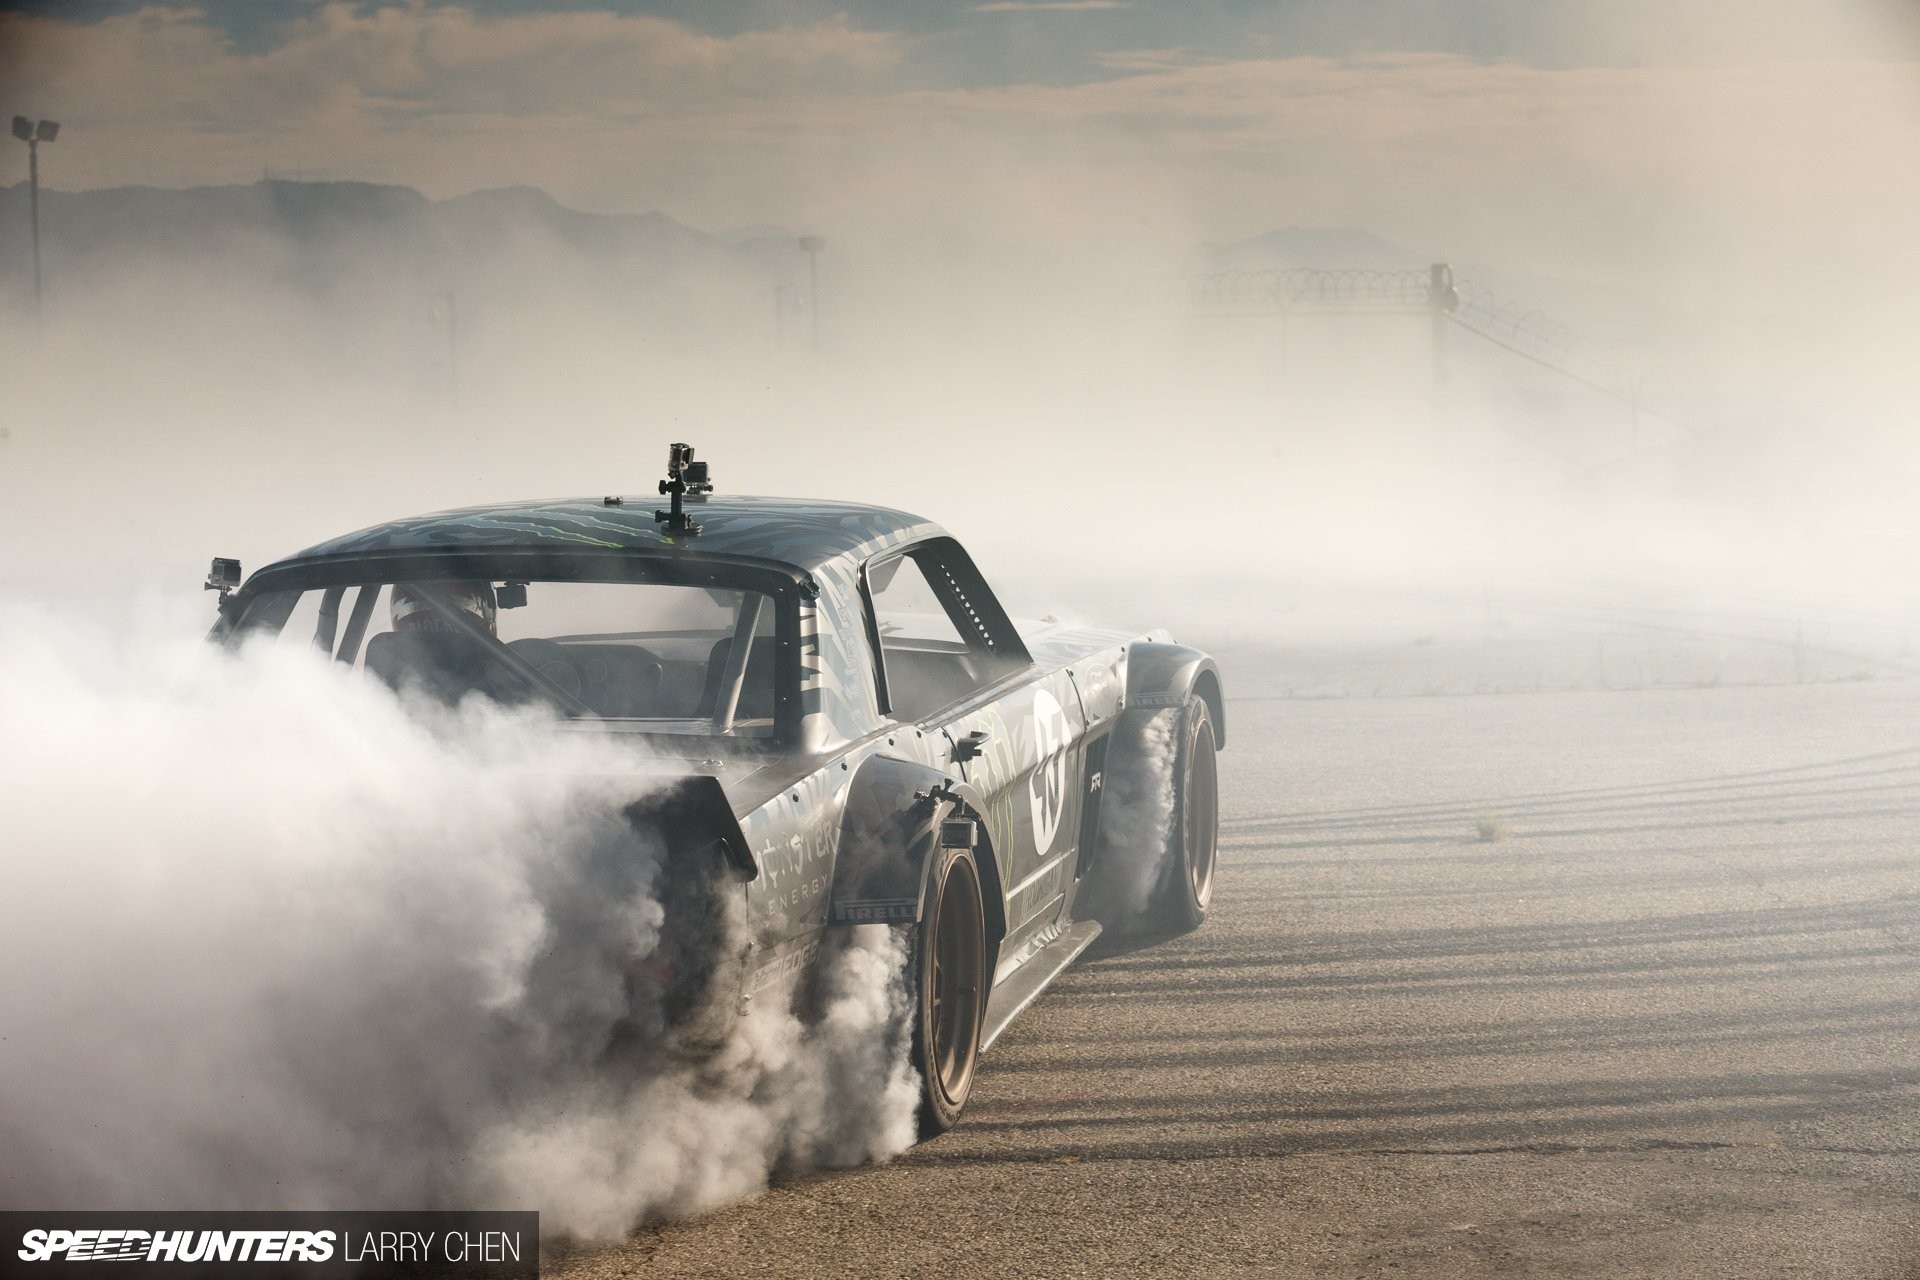 1920x1280 1965 Ford Mustang Hoonigan ASD Gymkhana-Seven drift hot rod rods muscle  race racing monster energy Hoonicorn wallpaper |  | 531605 |  WallpaperUP